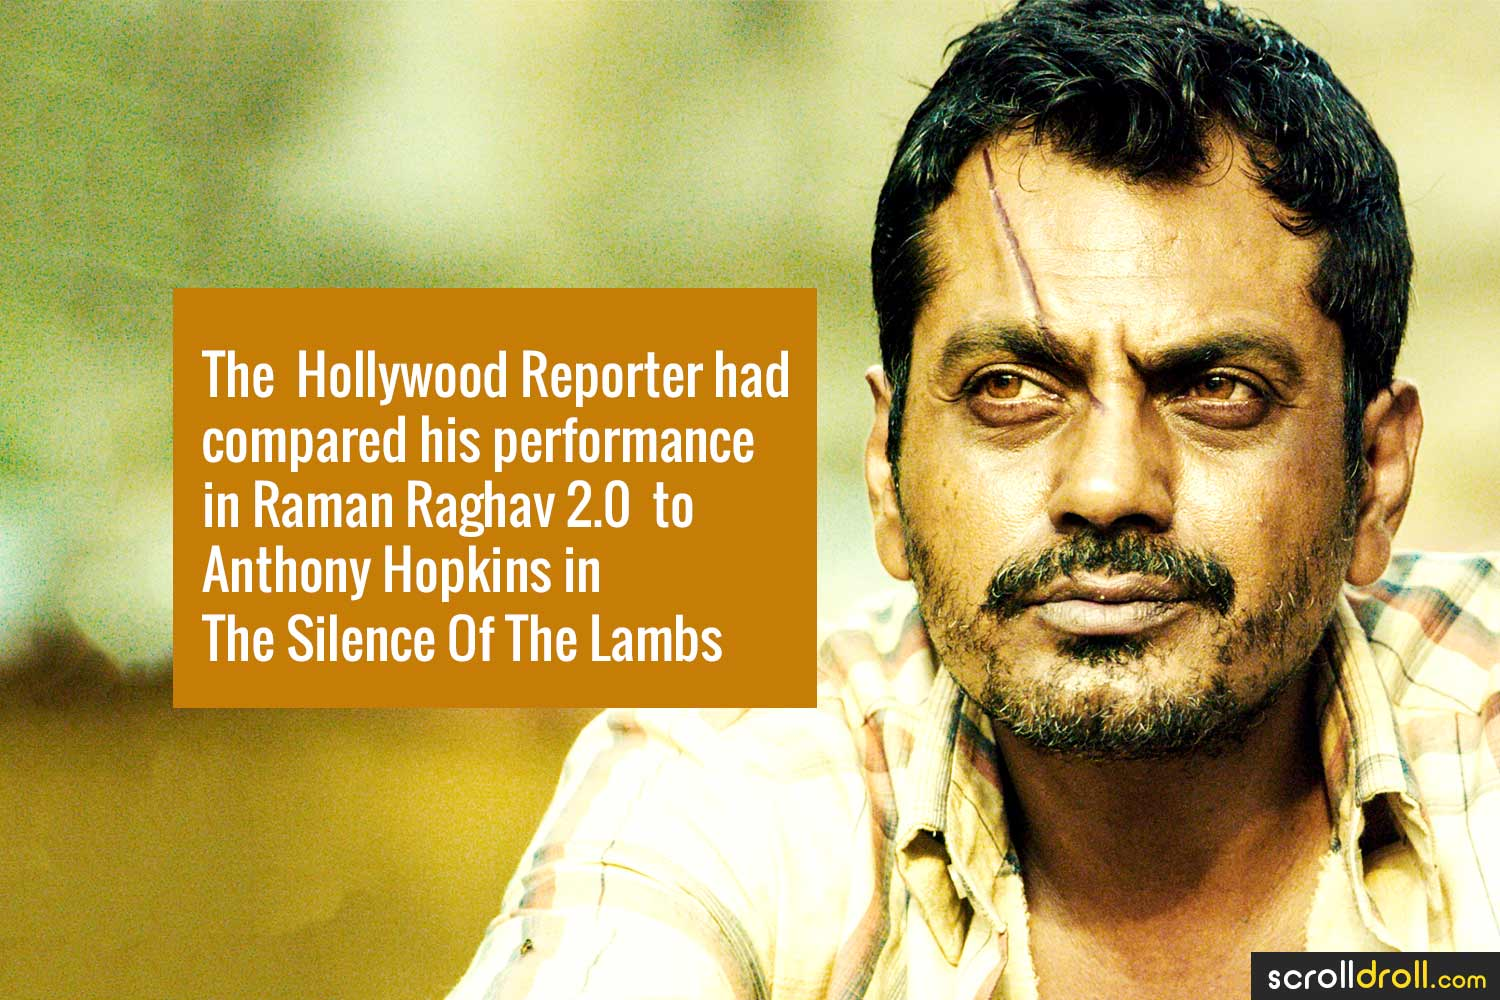 Facts about Nawazuddin Siddique-The Hollywood Reprter had compared his performance in Raman Raghav 2.0 to Anthonhy Hopkins in The Silence Of The Lambs